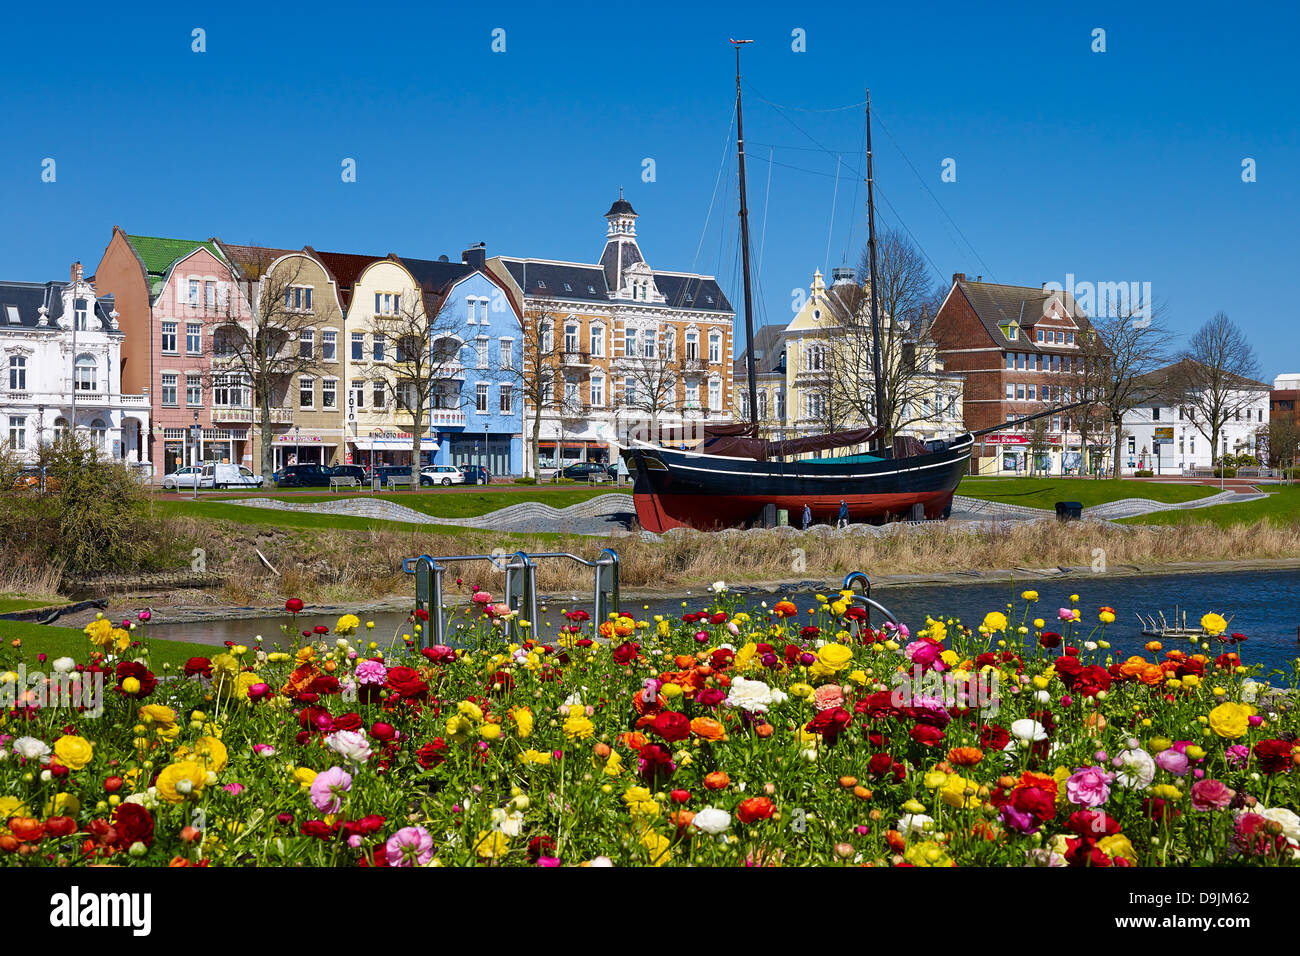 Deichstraße street with museum ship Hermine in Cuxhaven, Lower Saxony, Germany - Stock Image